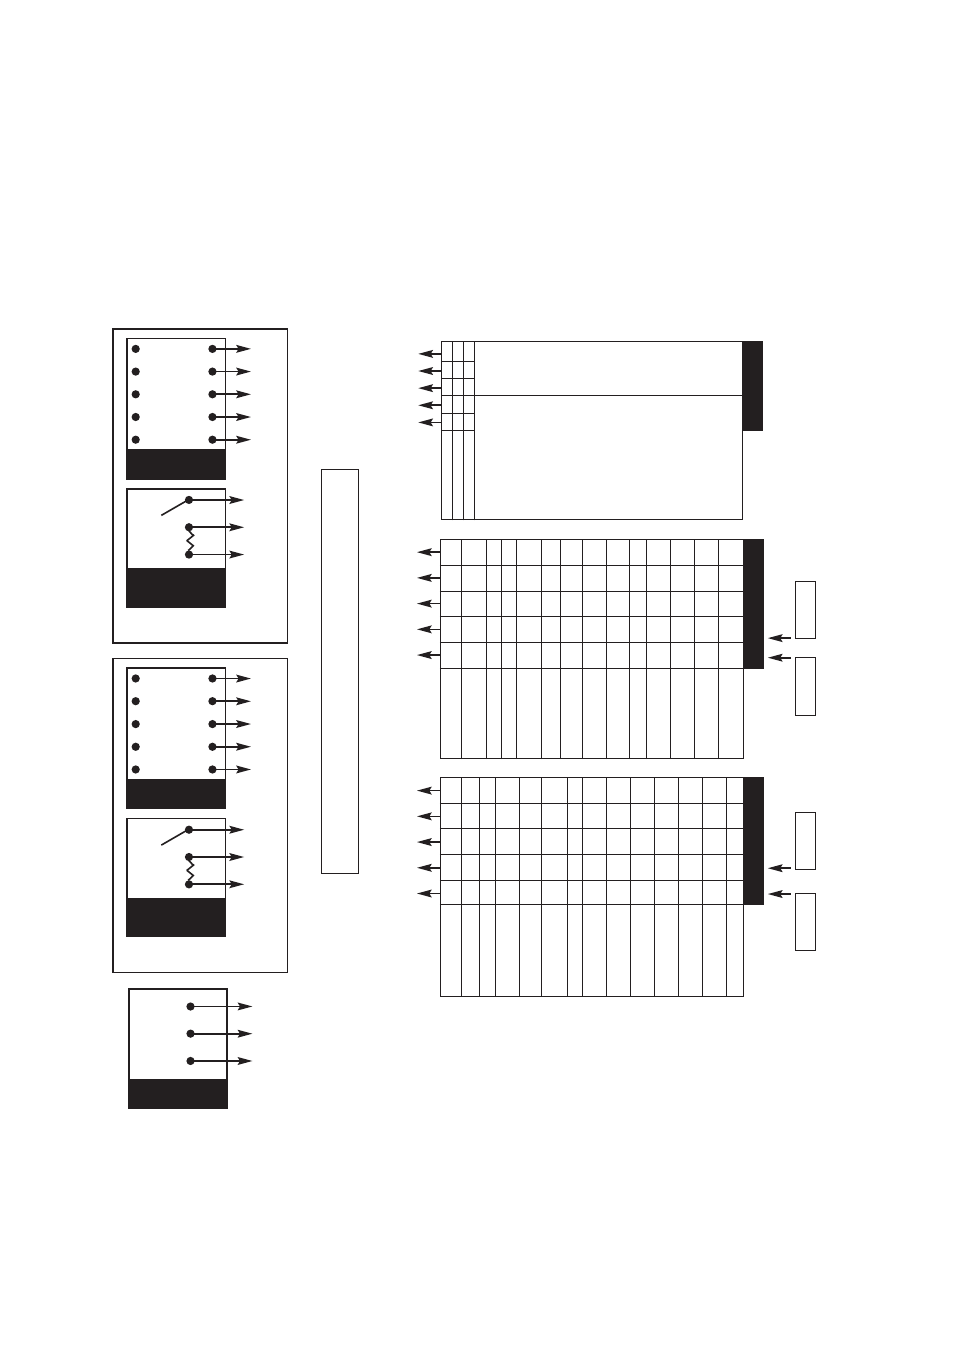 Miscellaneous, 1 wiring diagram for two heating zones, Pr